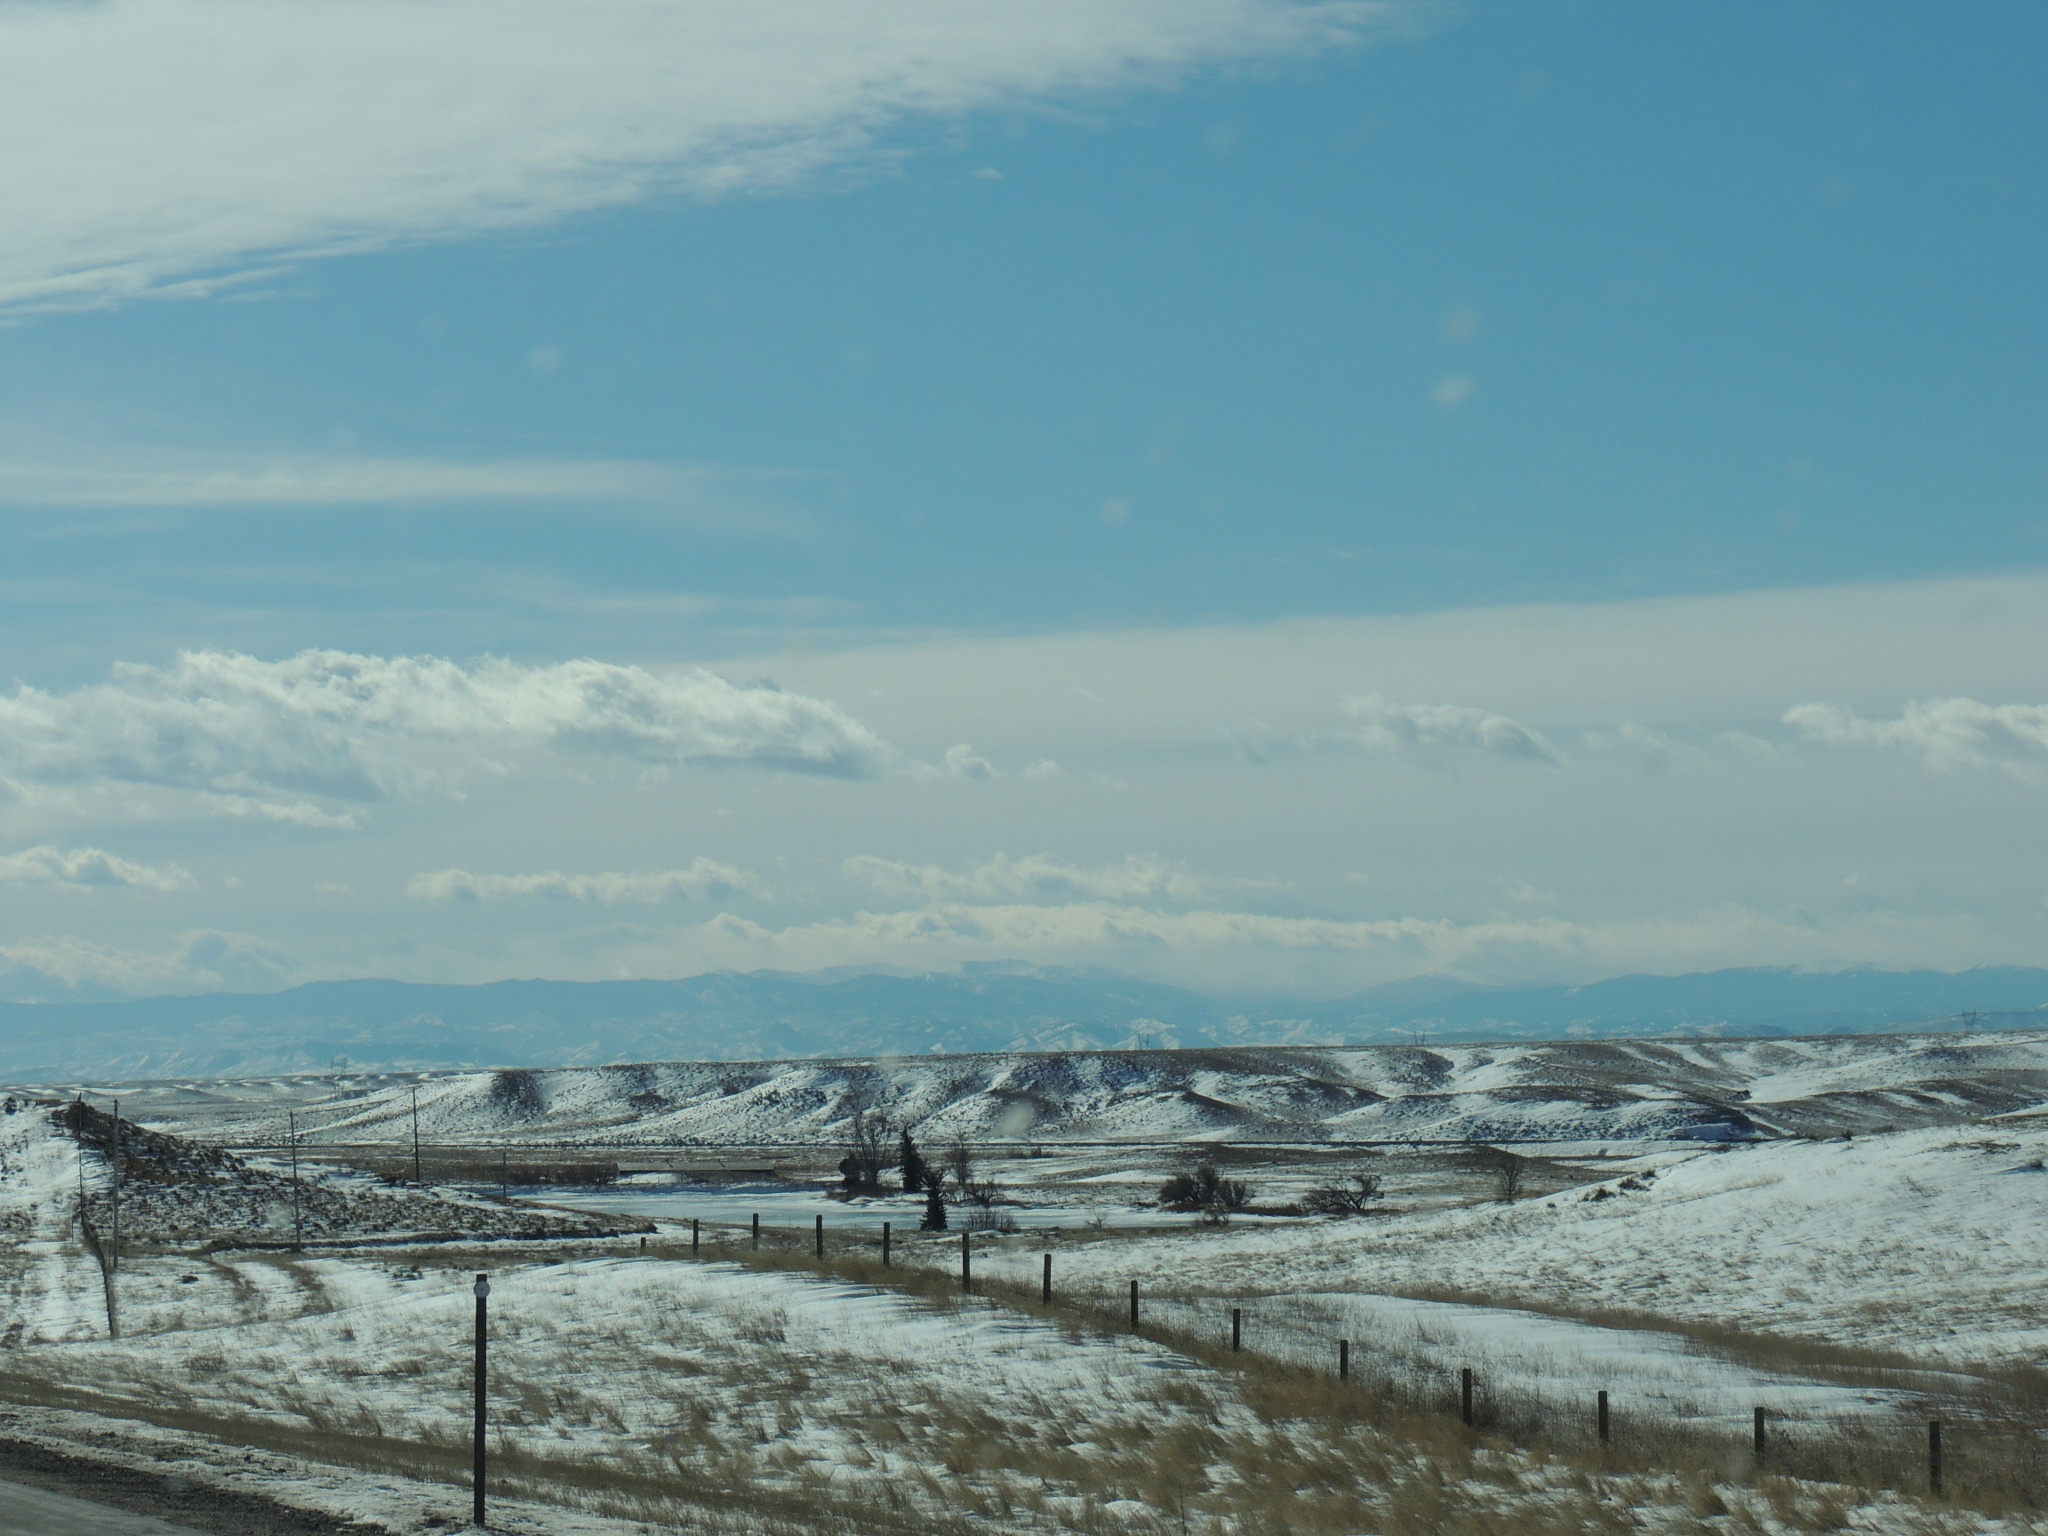 Snowy Wyoming landscape by sh2020